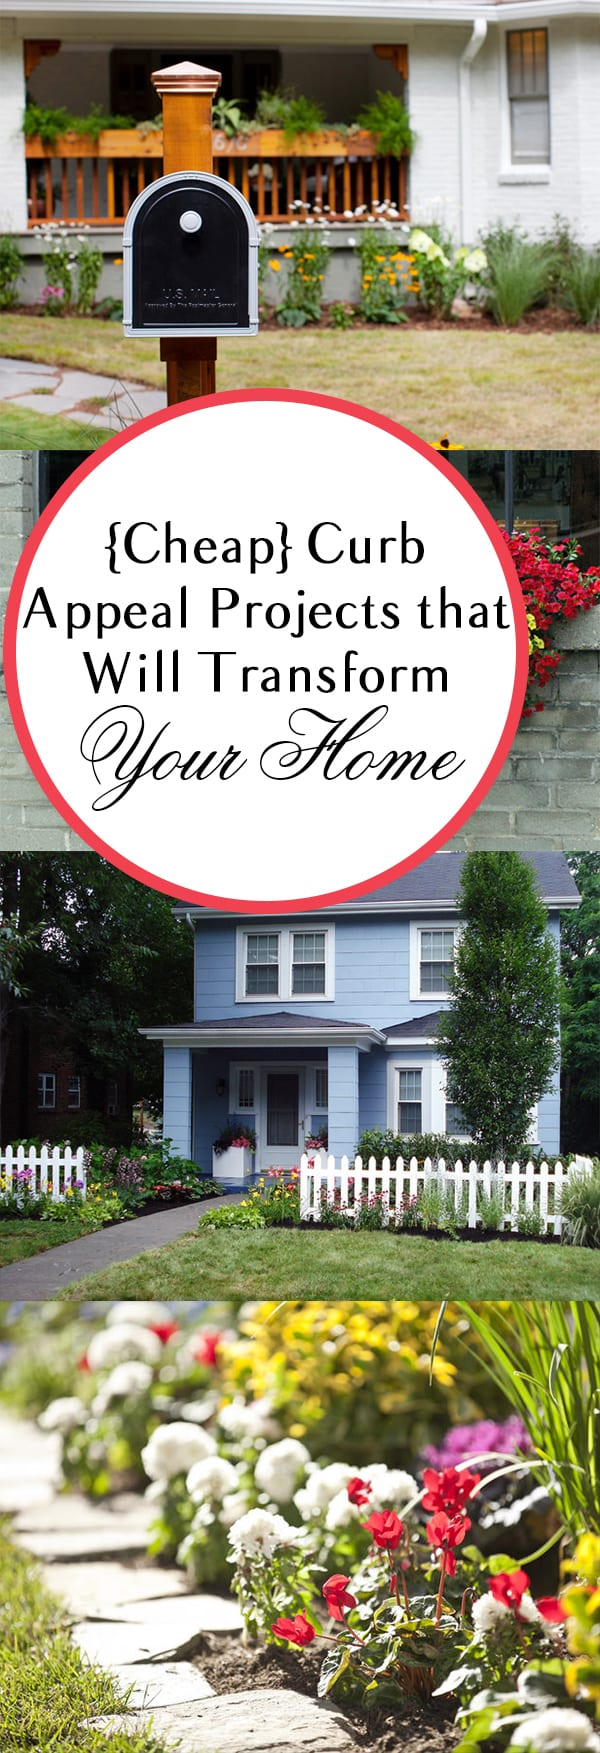 Cheap curb appeal projects that will transform your home how to build it Home selling four diy tricks to maximize the curb appeal